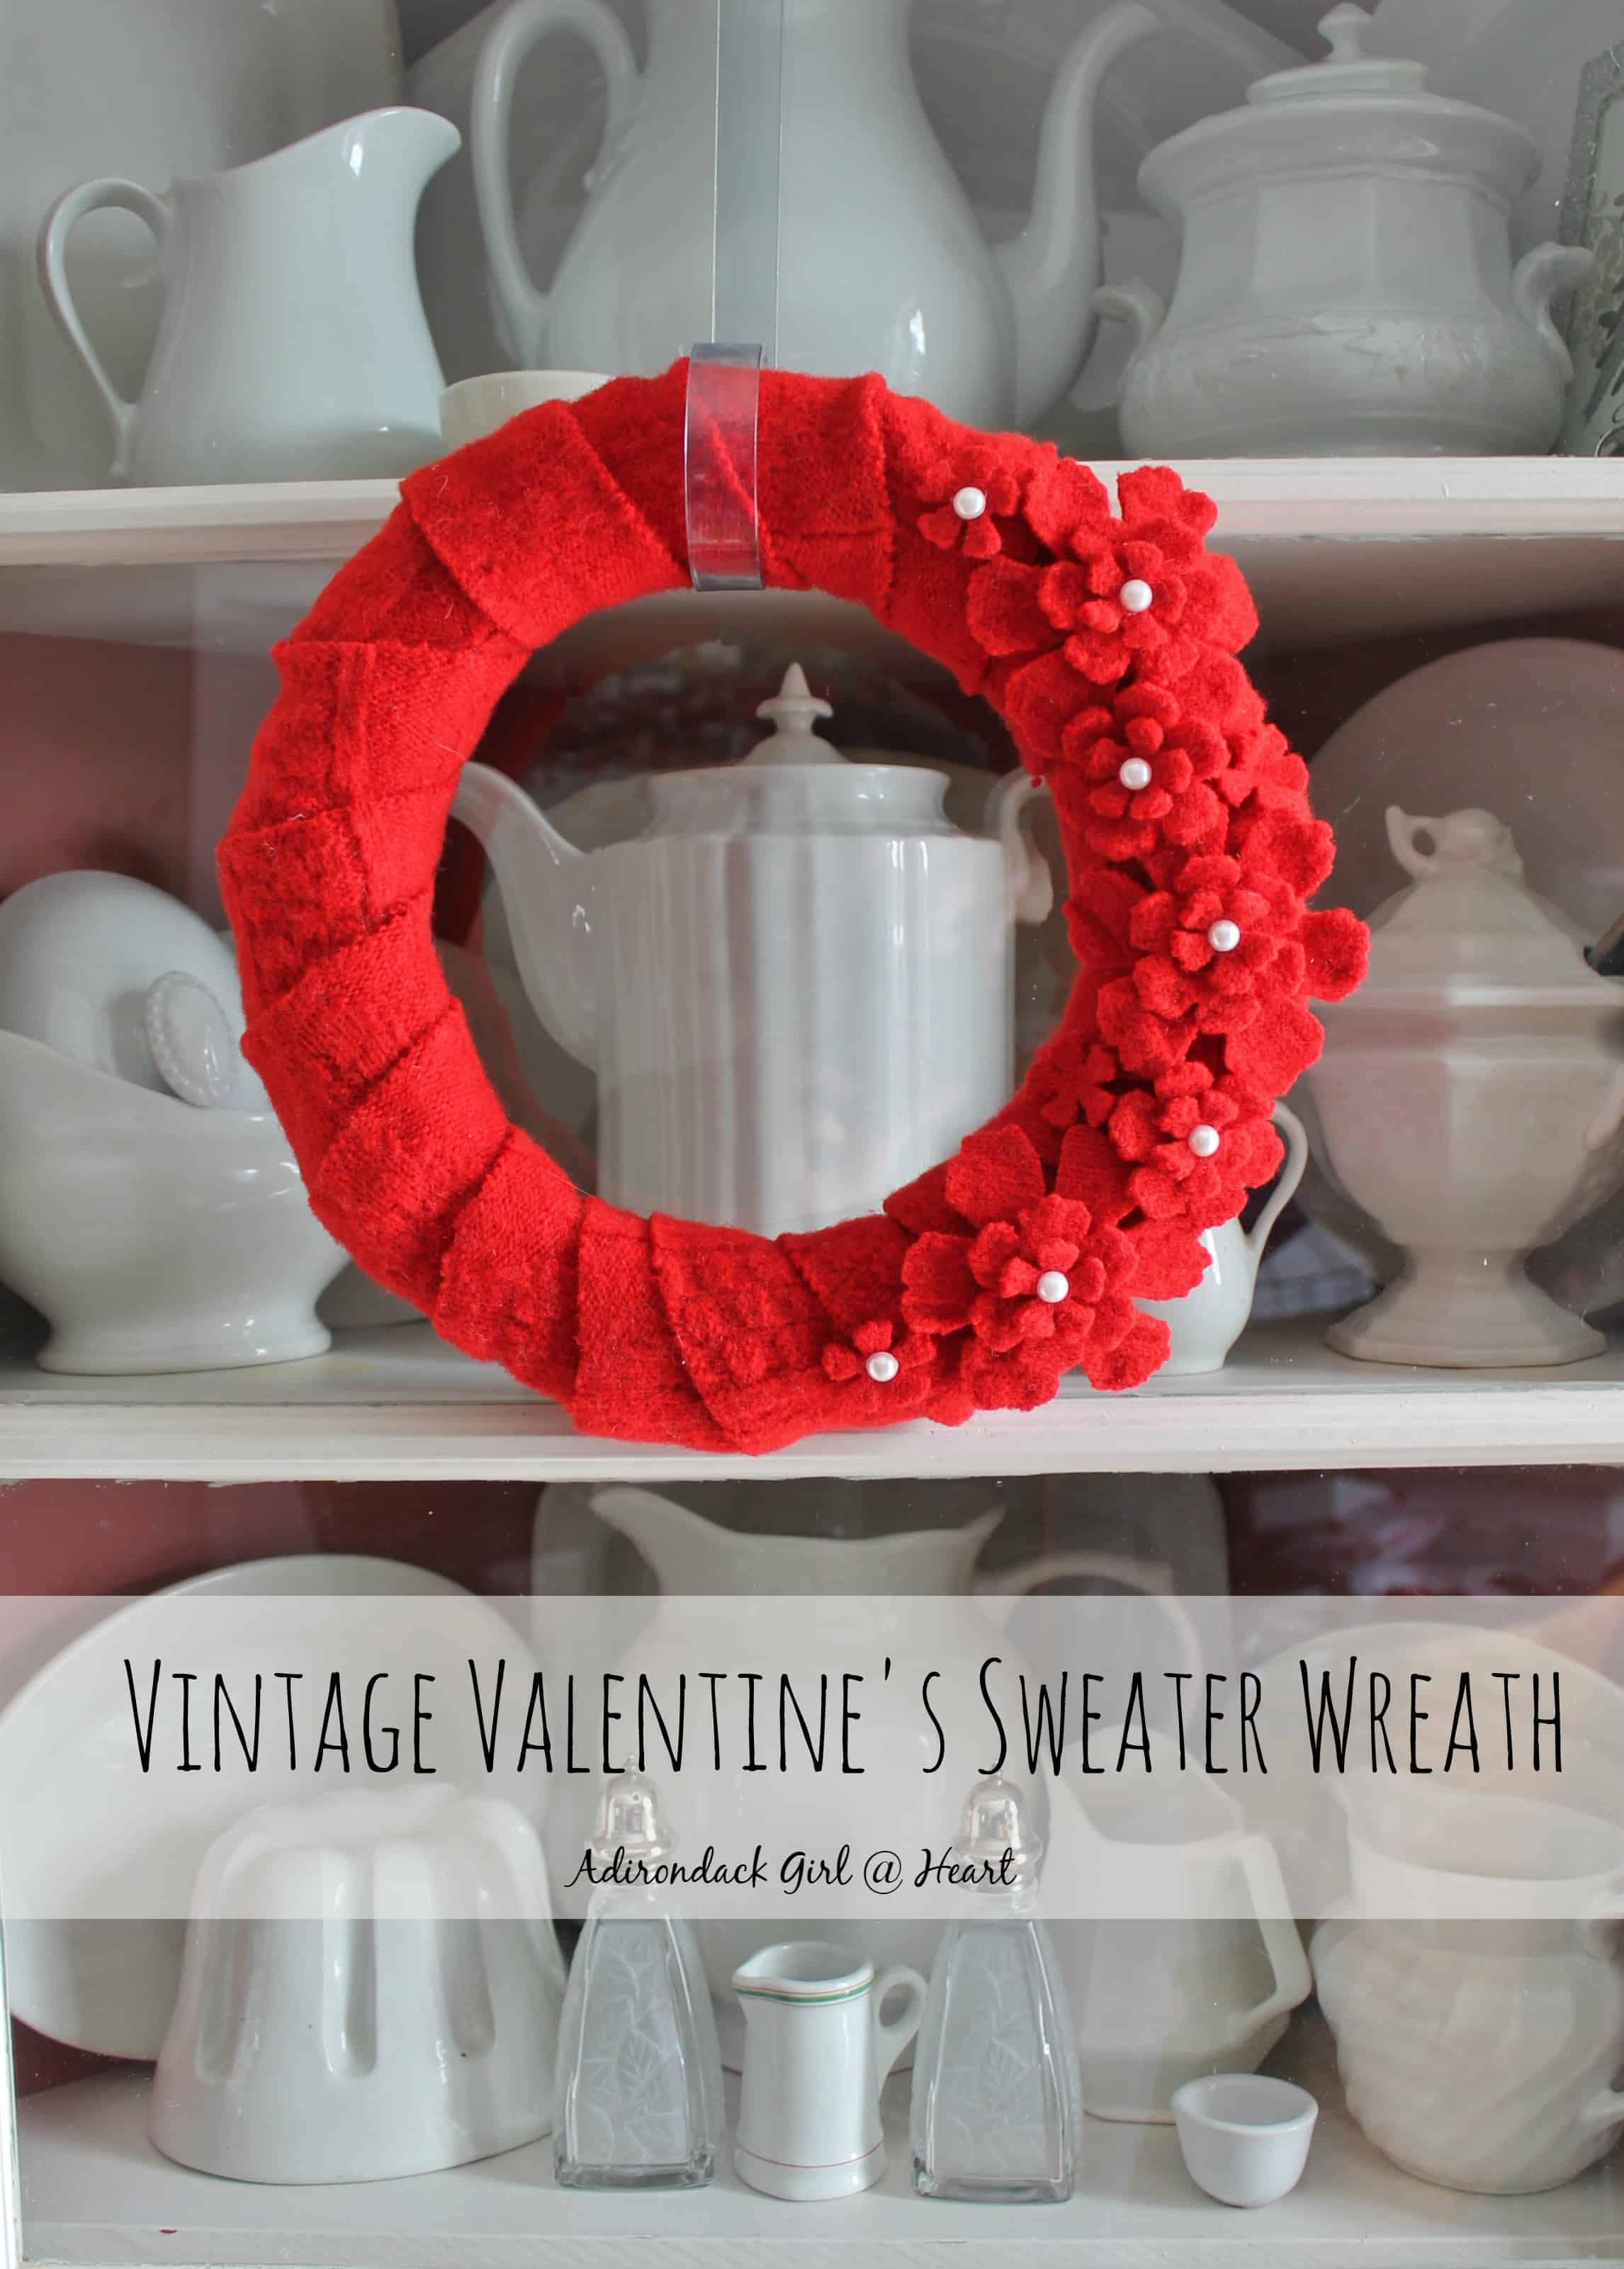 Valentine's Wreath at Adirondack Girl @ Heart